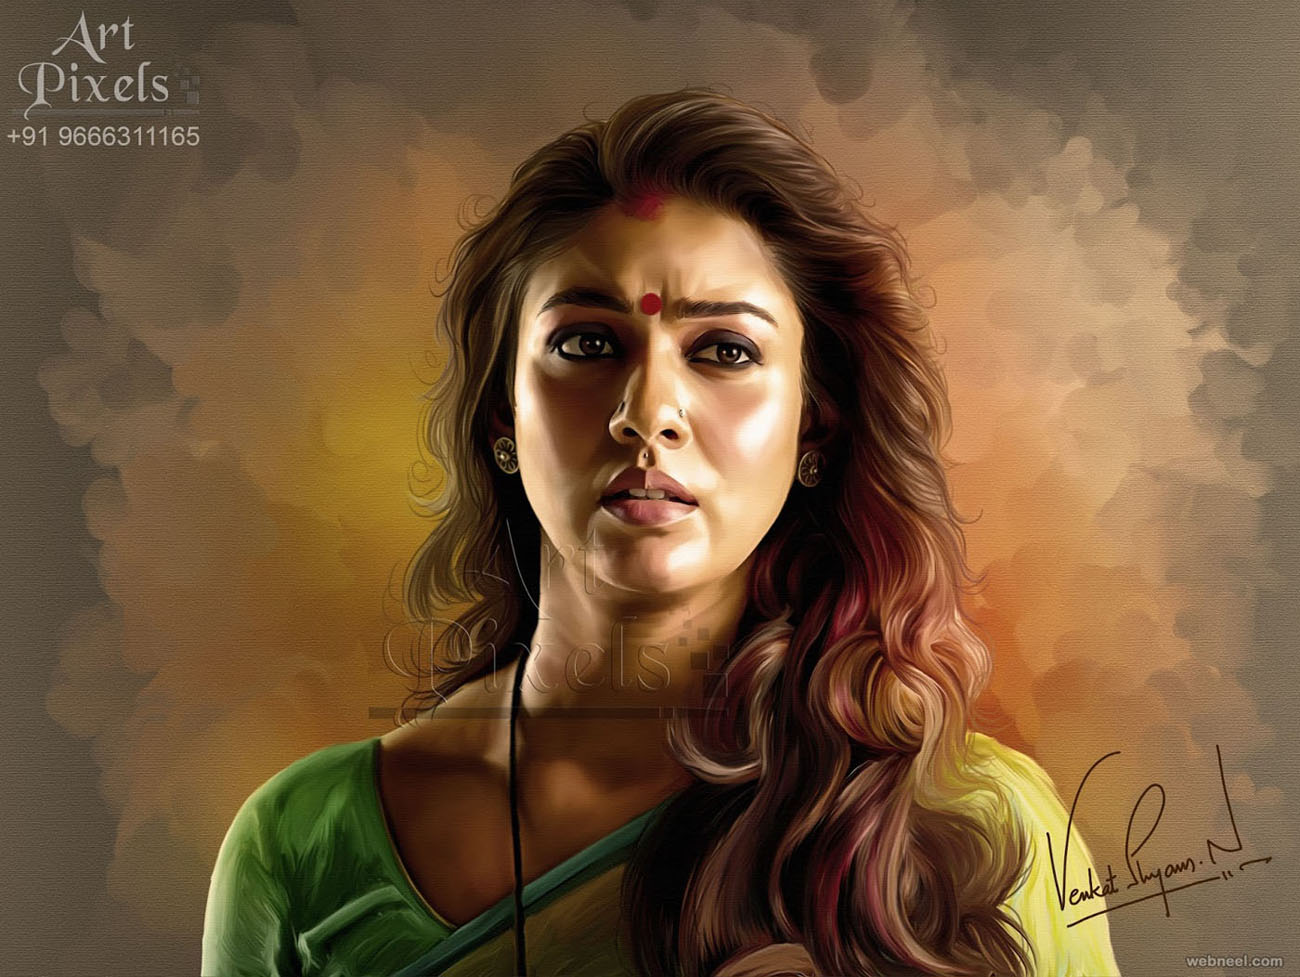 nayan tara actress digital painting